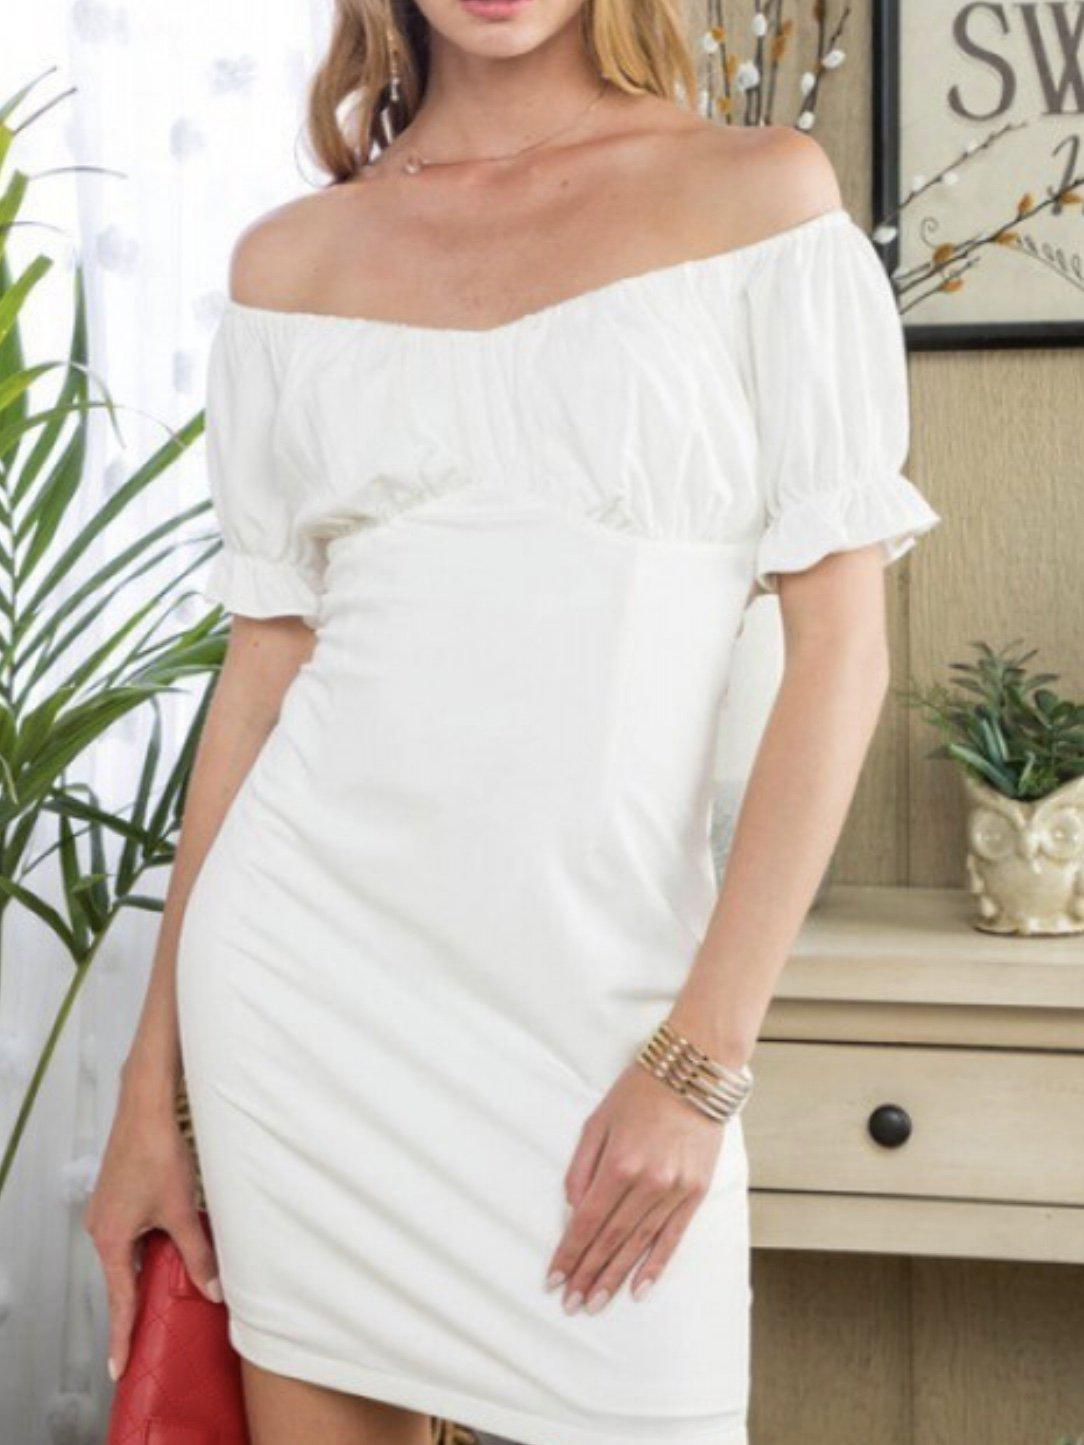 WHITE HEAT DRESS-Women's DRESS-New Arrivals-Runway Seven